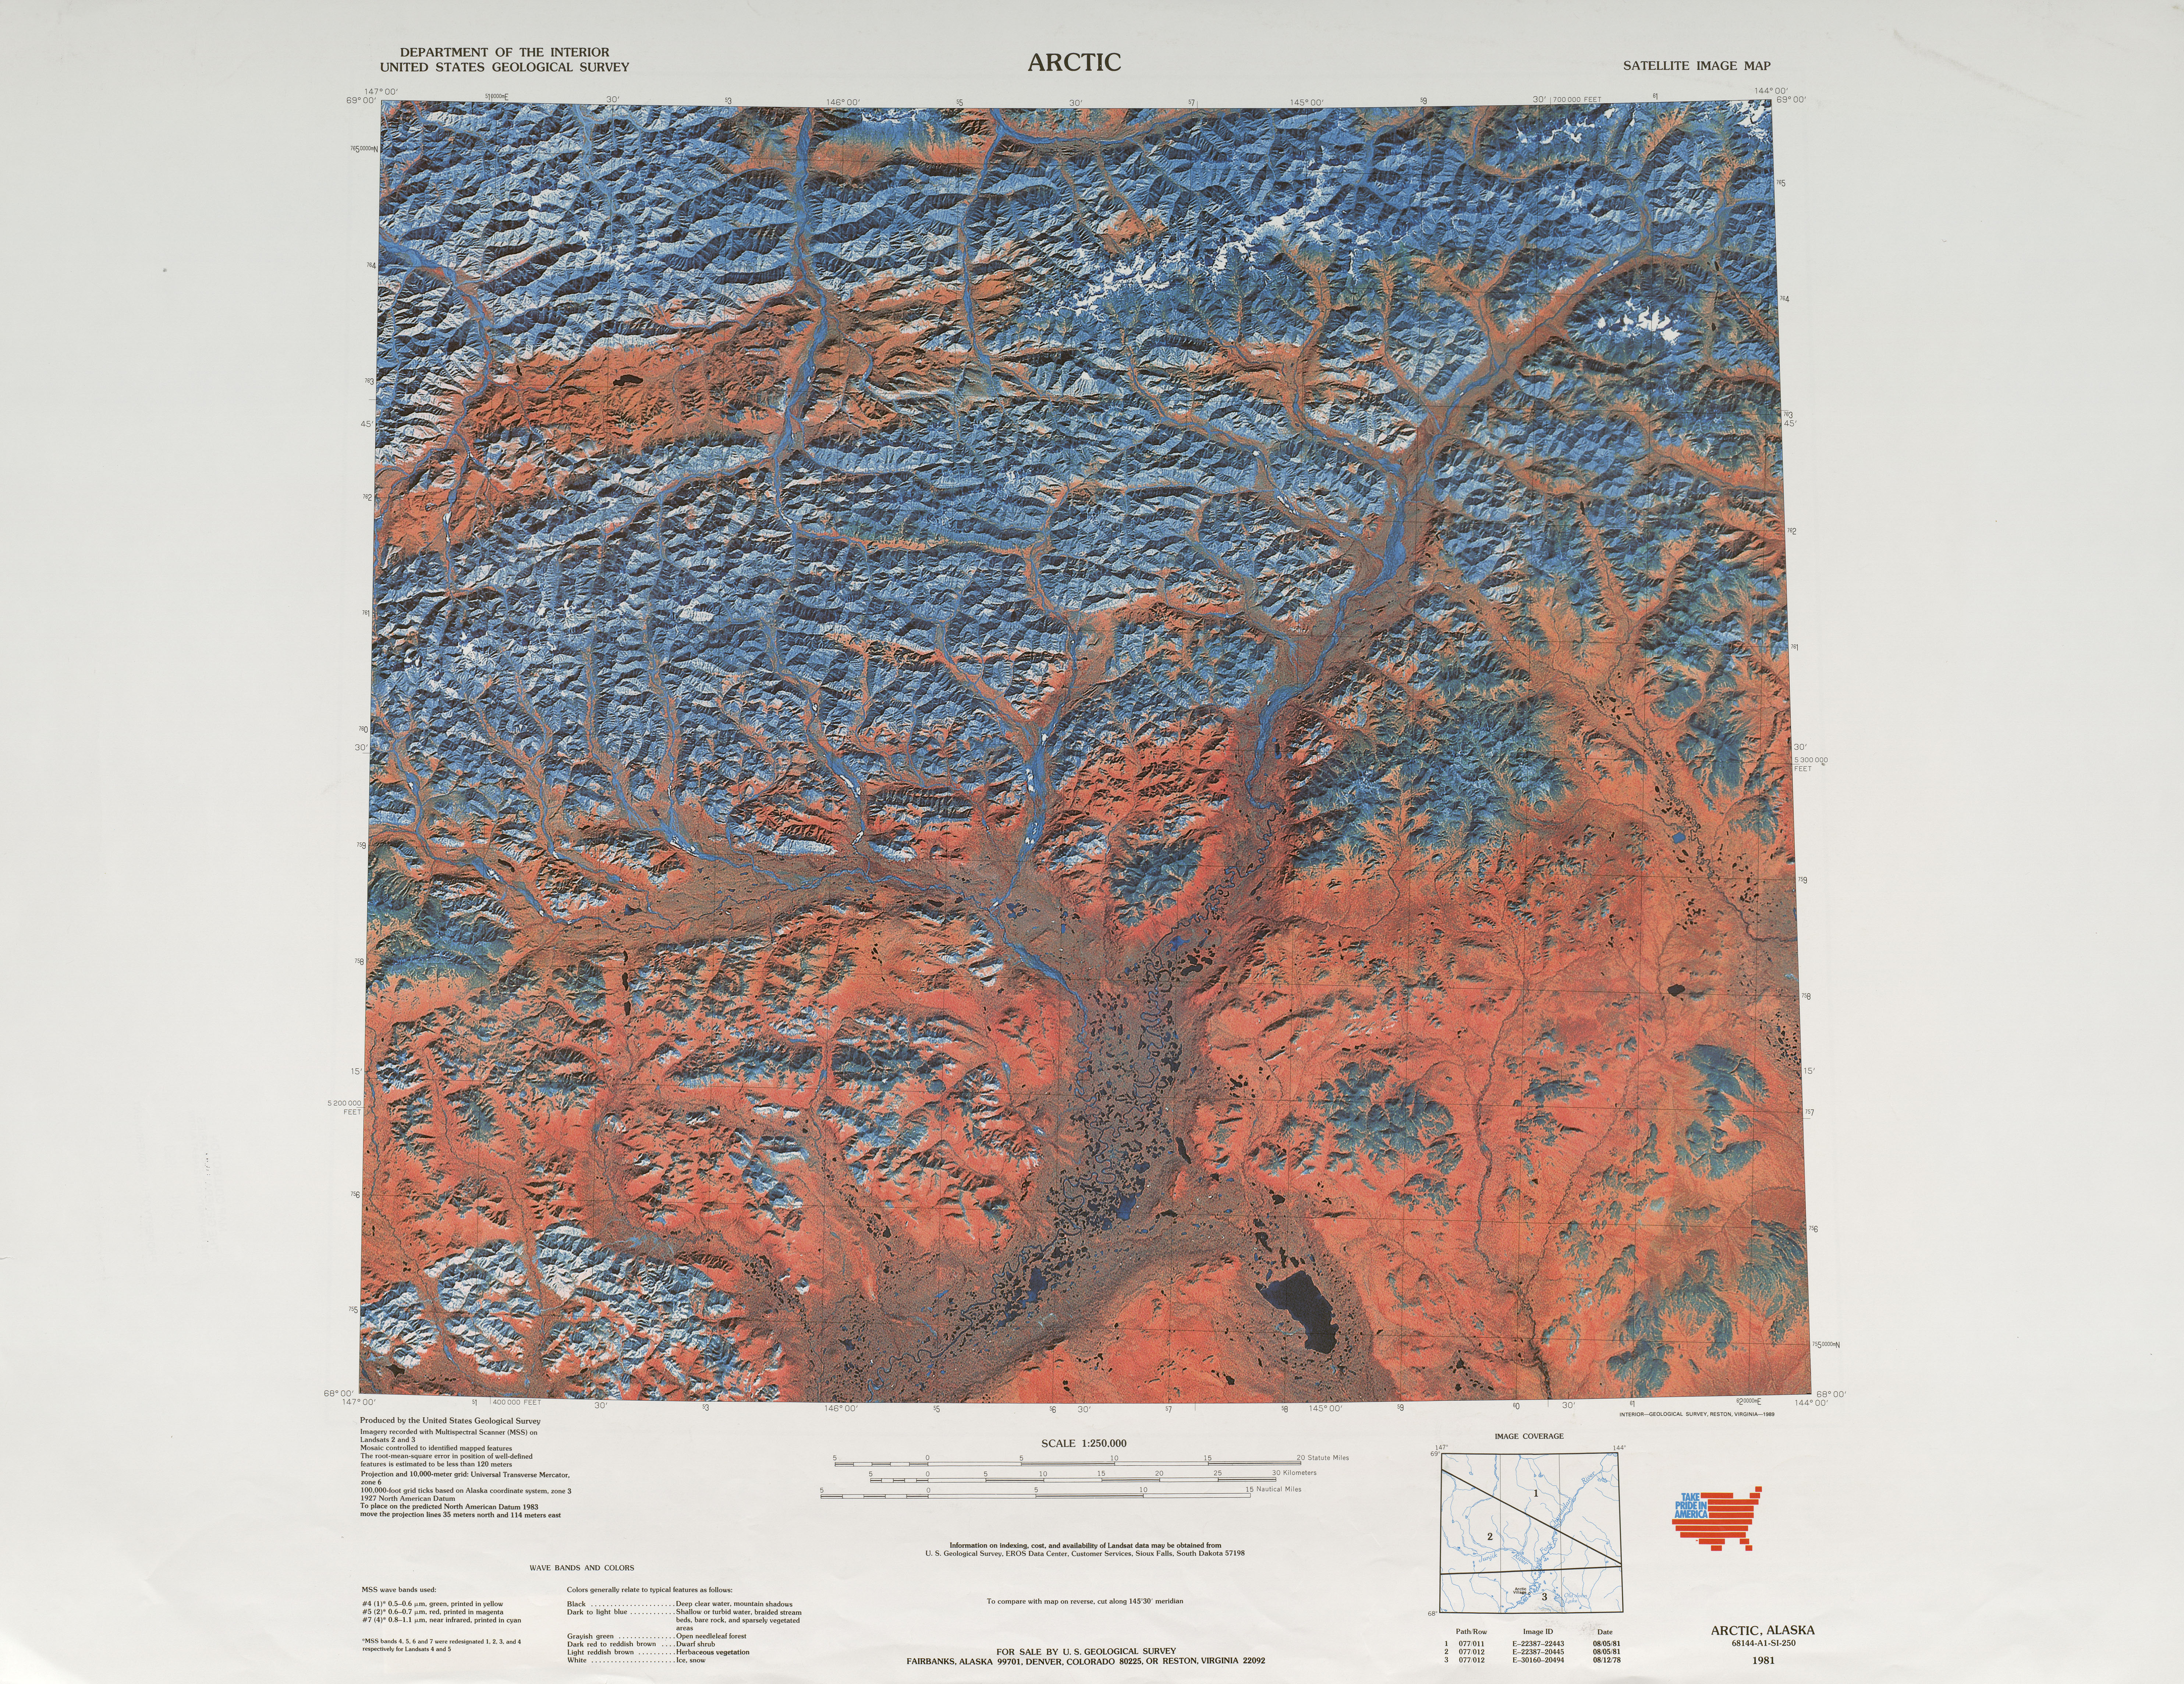 Alaska Topographic Maps PerryCastañeda Map Collection UT - Us topographic maps online free